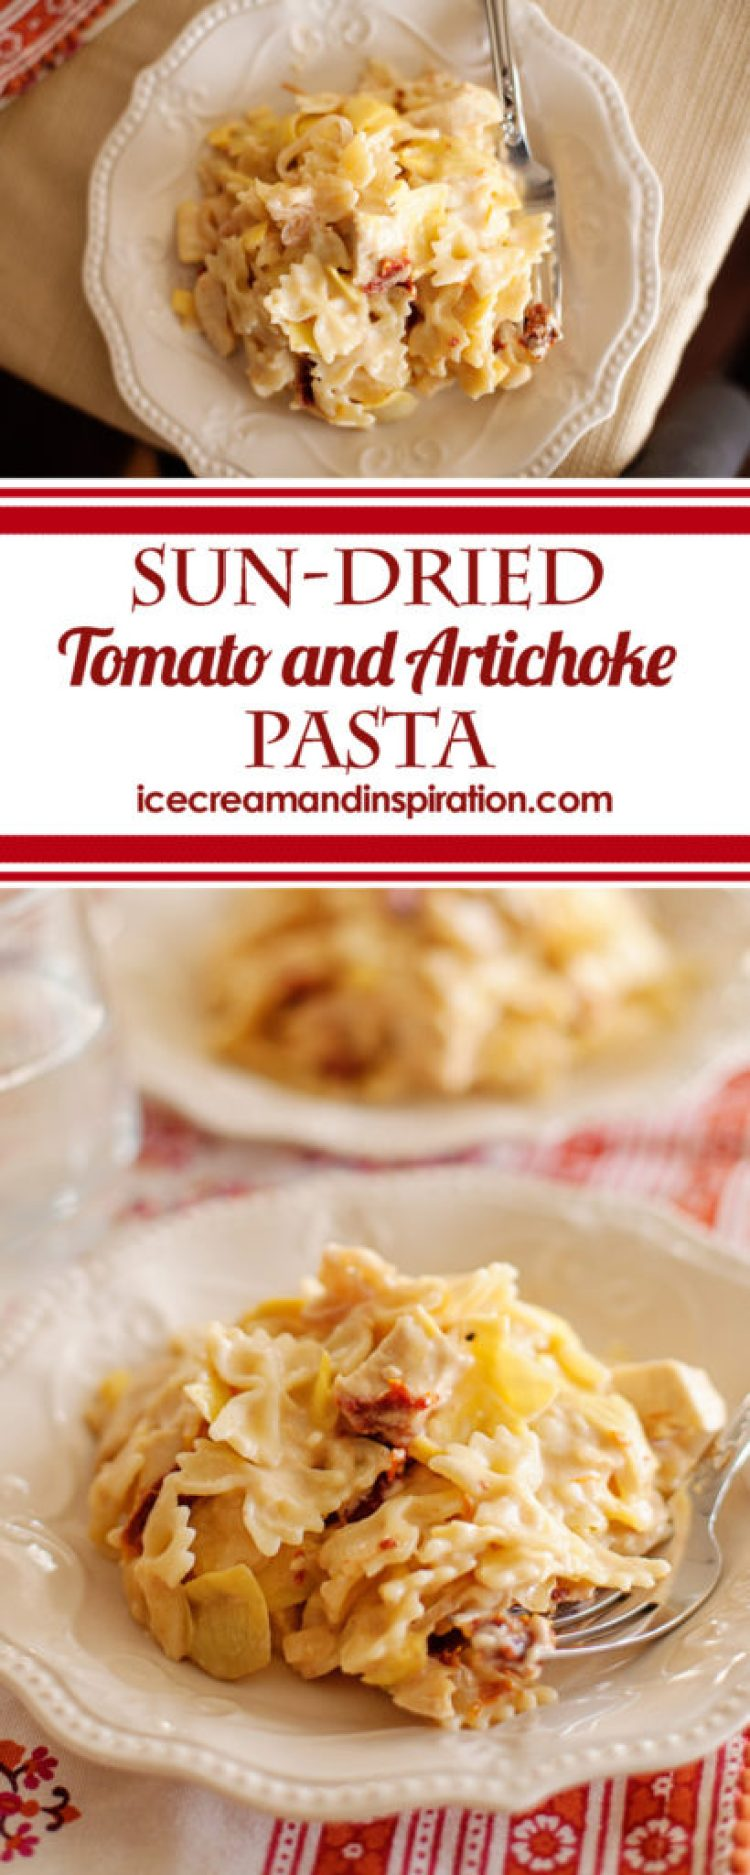 This Sun-Dried Tomato and Artichoke pasta can be ready in just 20 minutes! Enjoy the flavors of tangy sun-dried tomatoes with mellow artichoke hearts in a creamy Alfredo sauce.